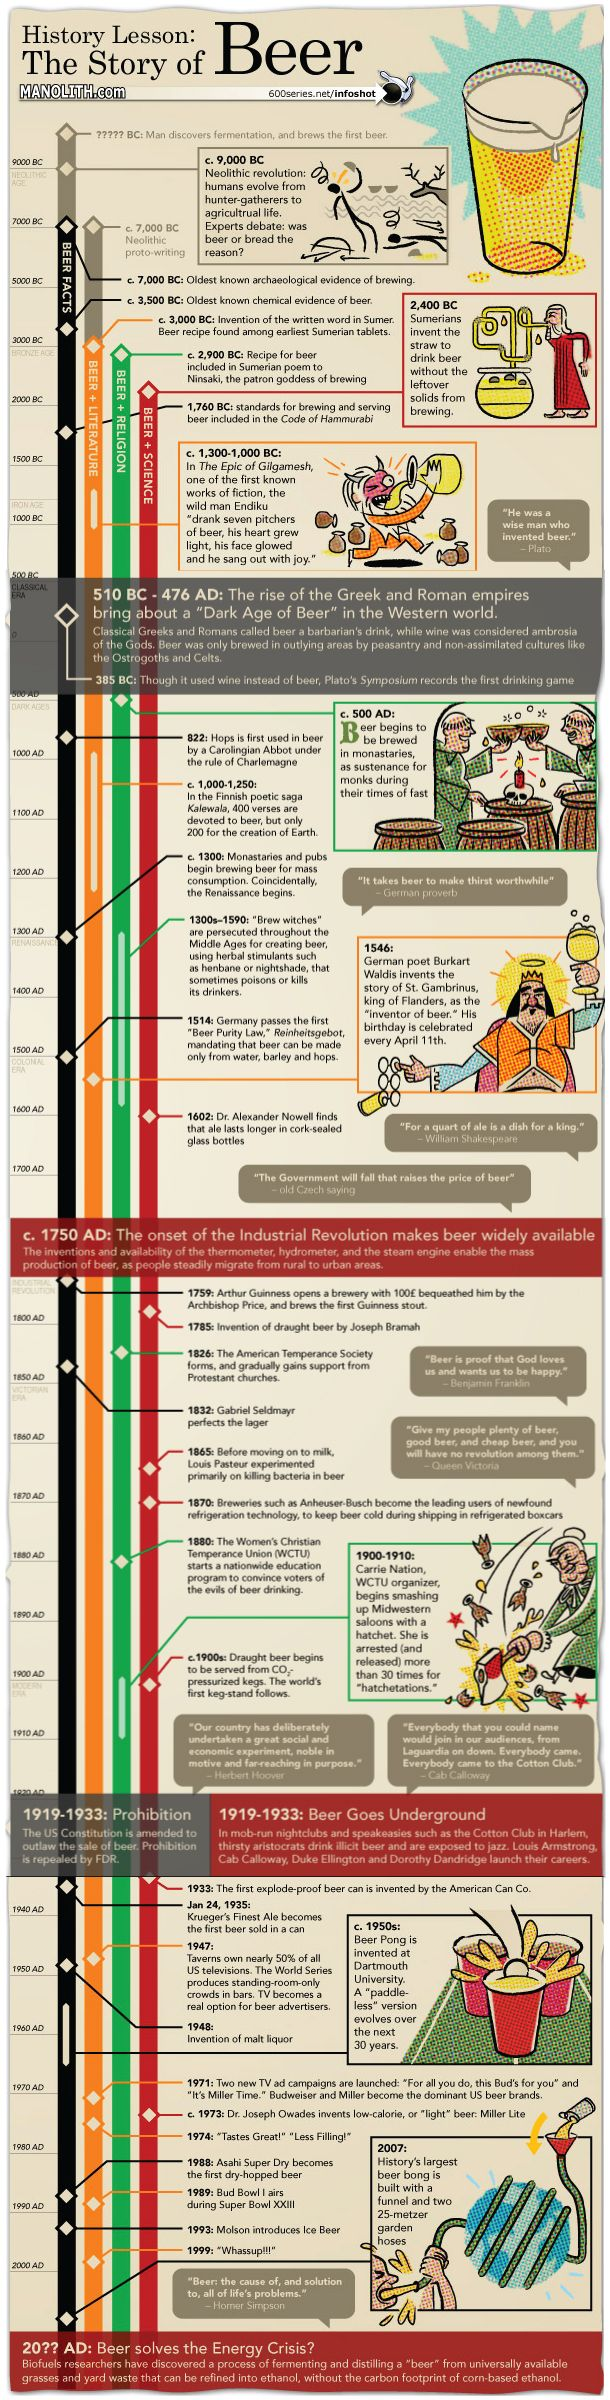 This infographic provides a very thorough timeline for the history of beer from 9,000B.C to modern day. It gives information of the humble beginnings